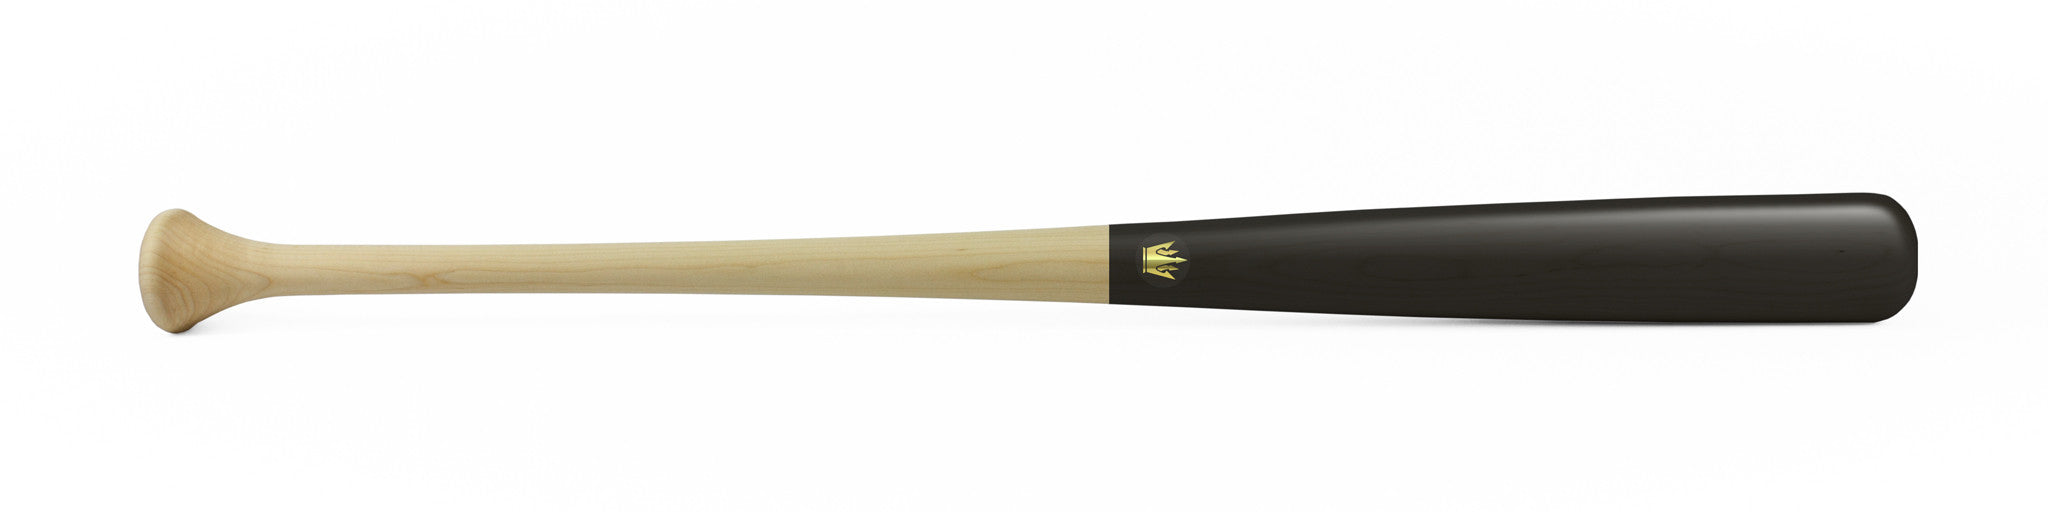 Wood bat - Birch model 280 Black Standard - 12